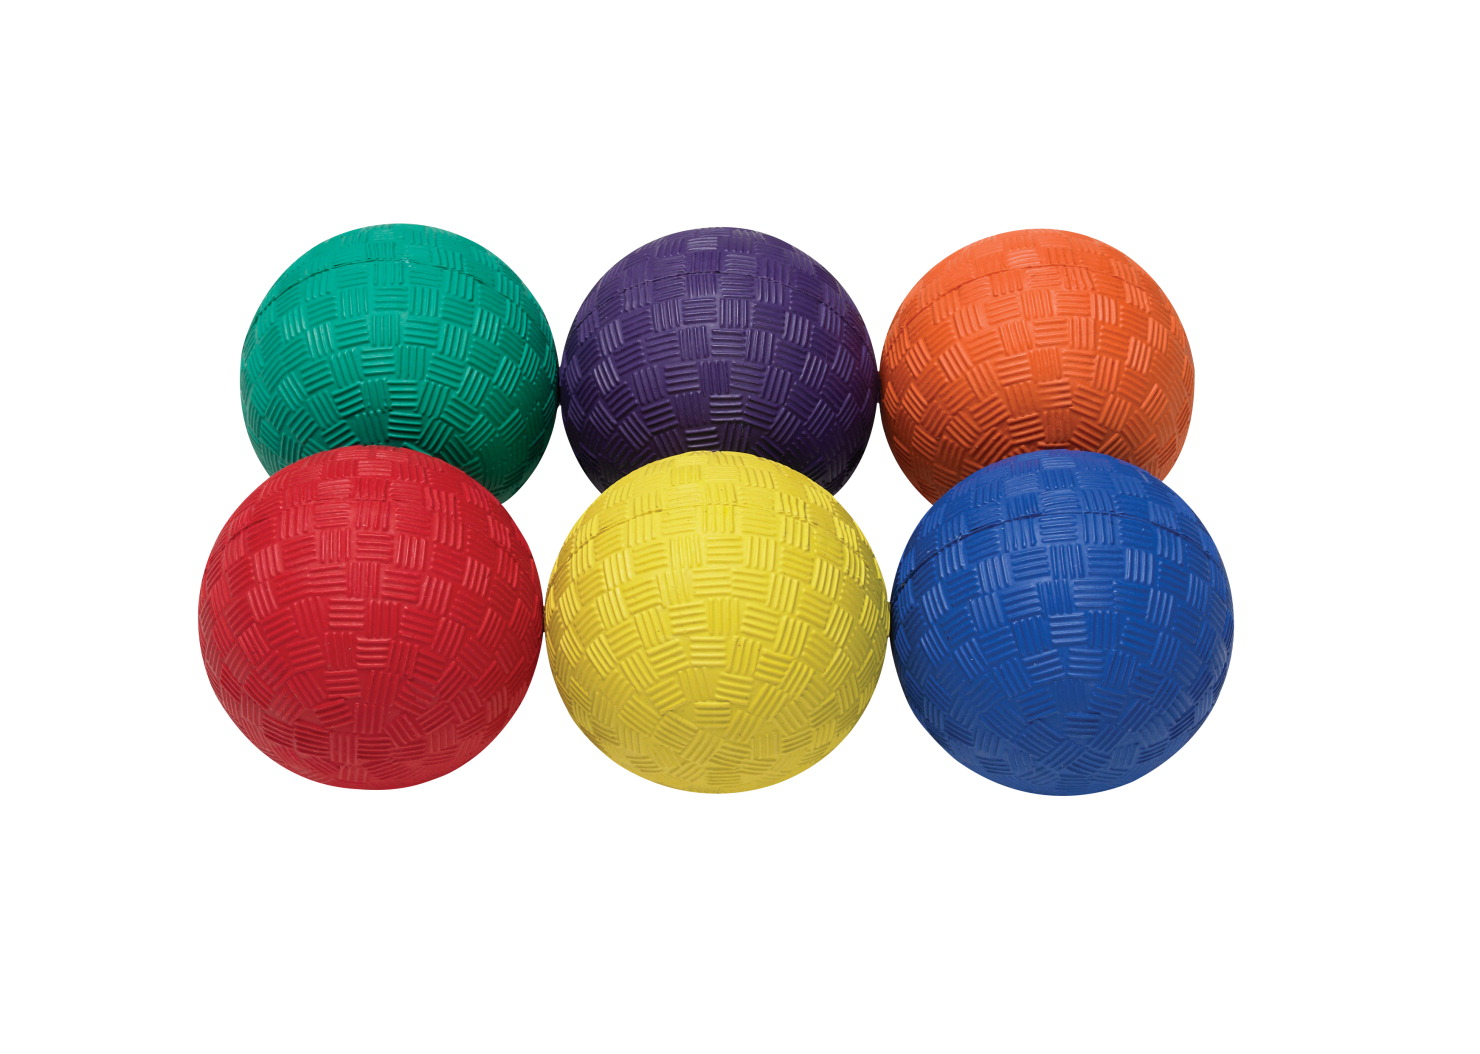 Sportime 2-1/2 in Smallest Playground Balls, Set of 6